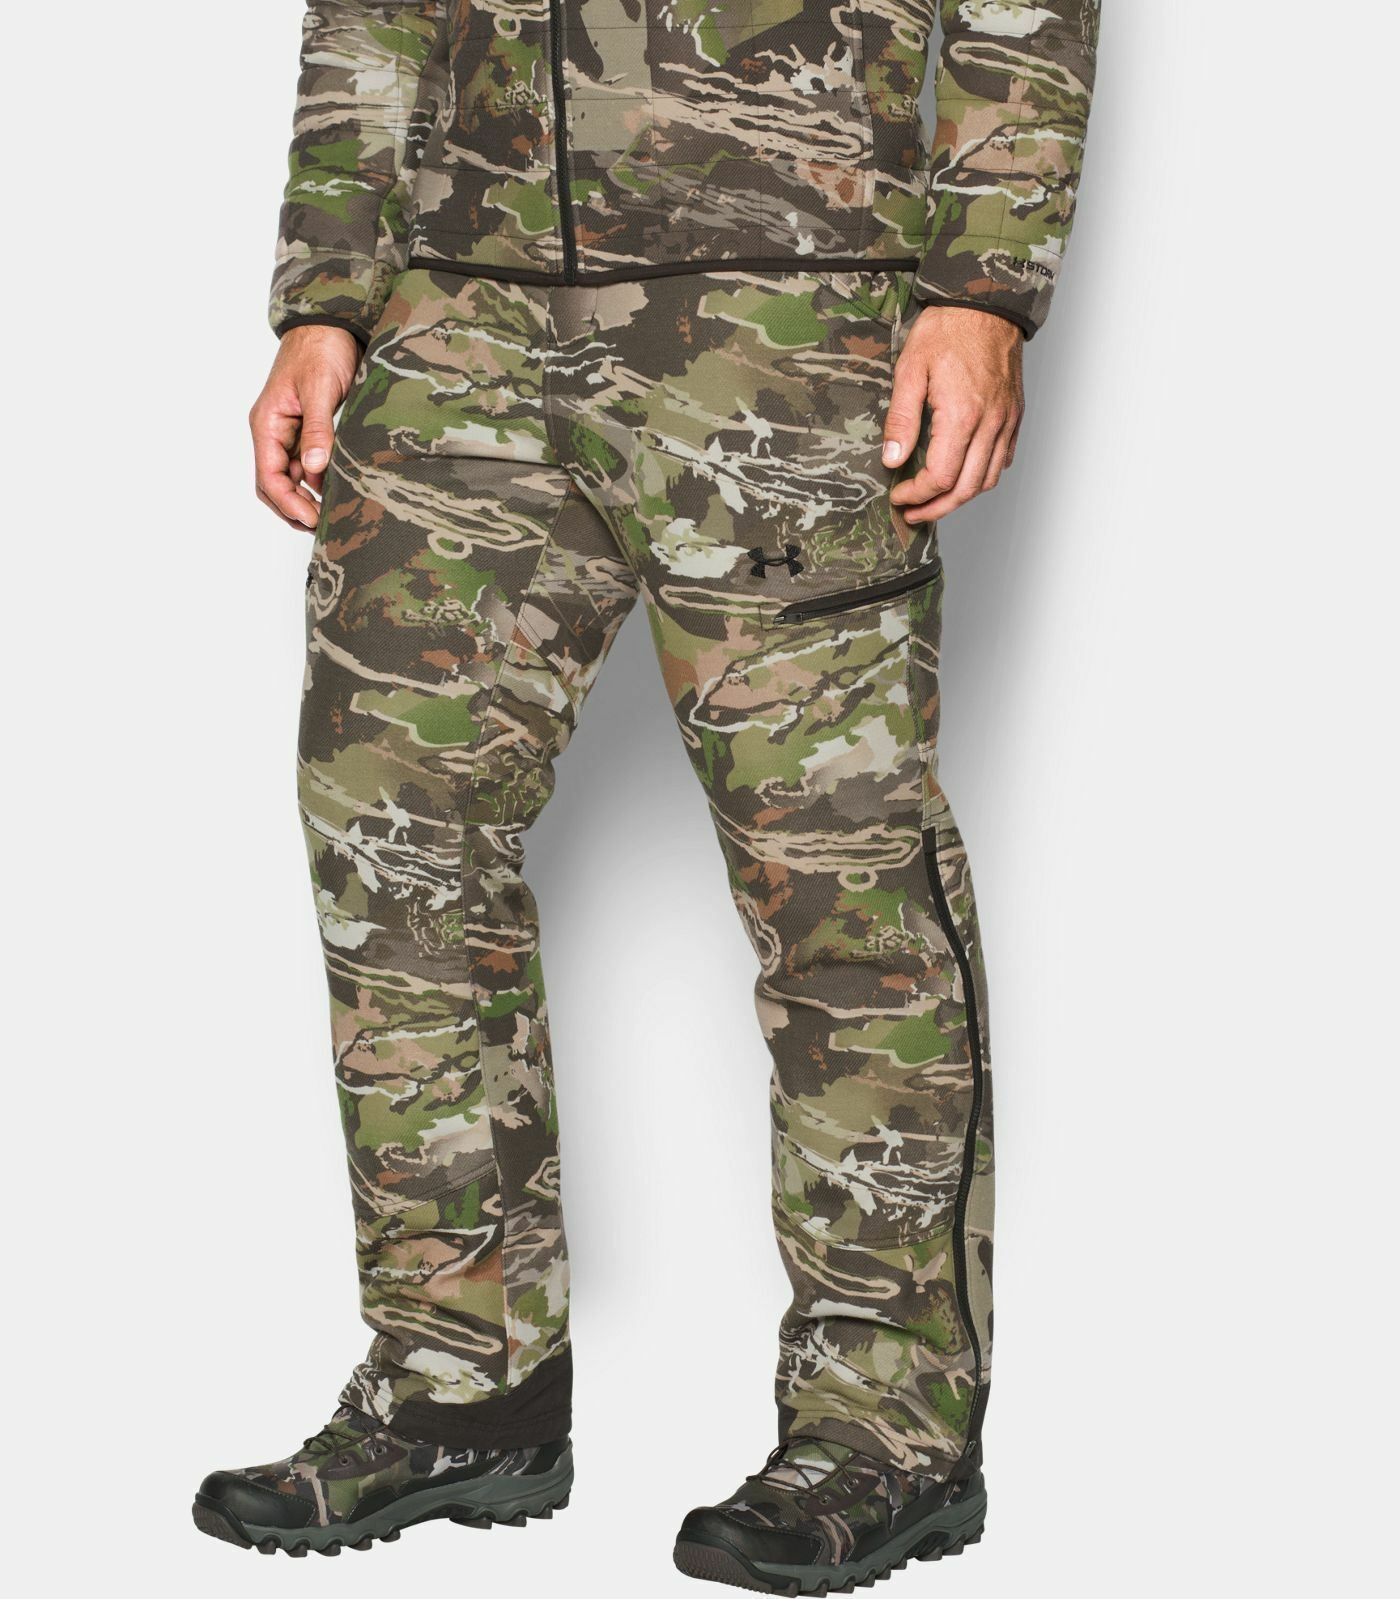 UA Stealth Reaper Extreme Wool Men's Hunting Pants   1299283 Barren or Forest